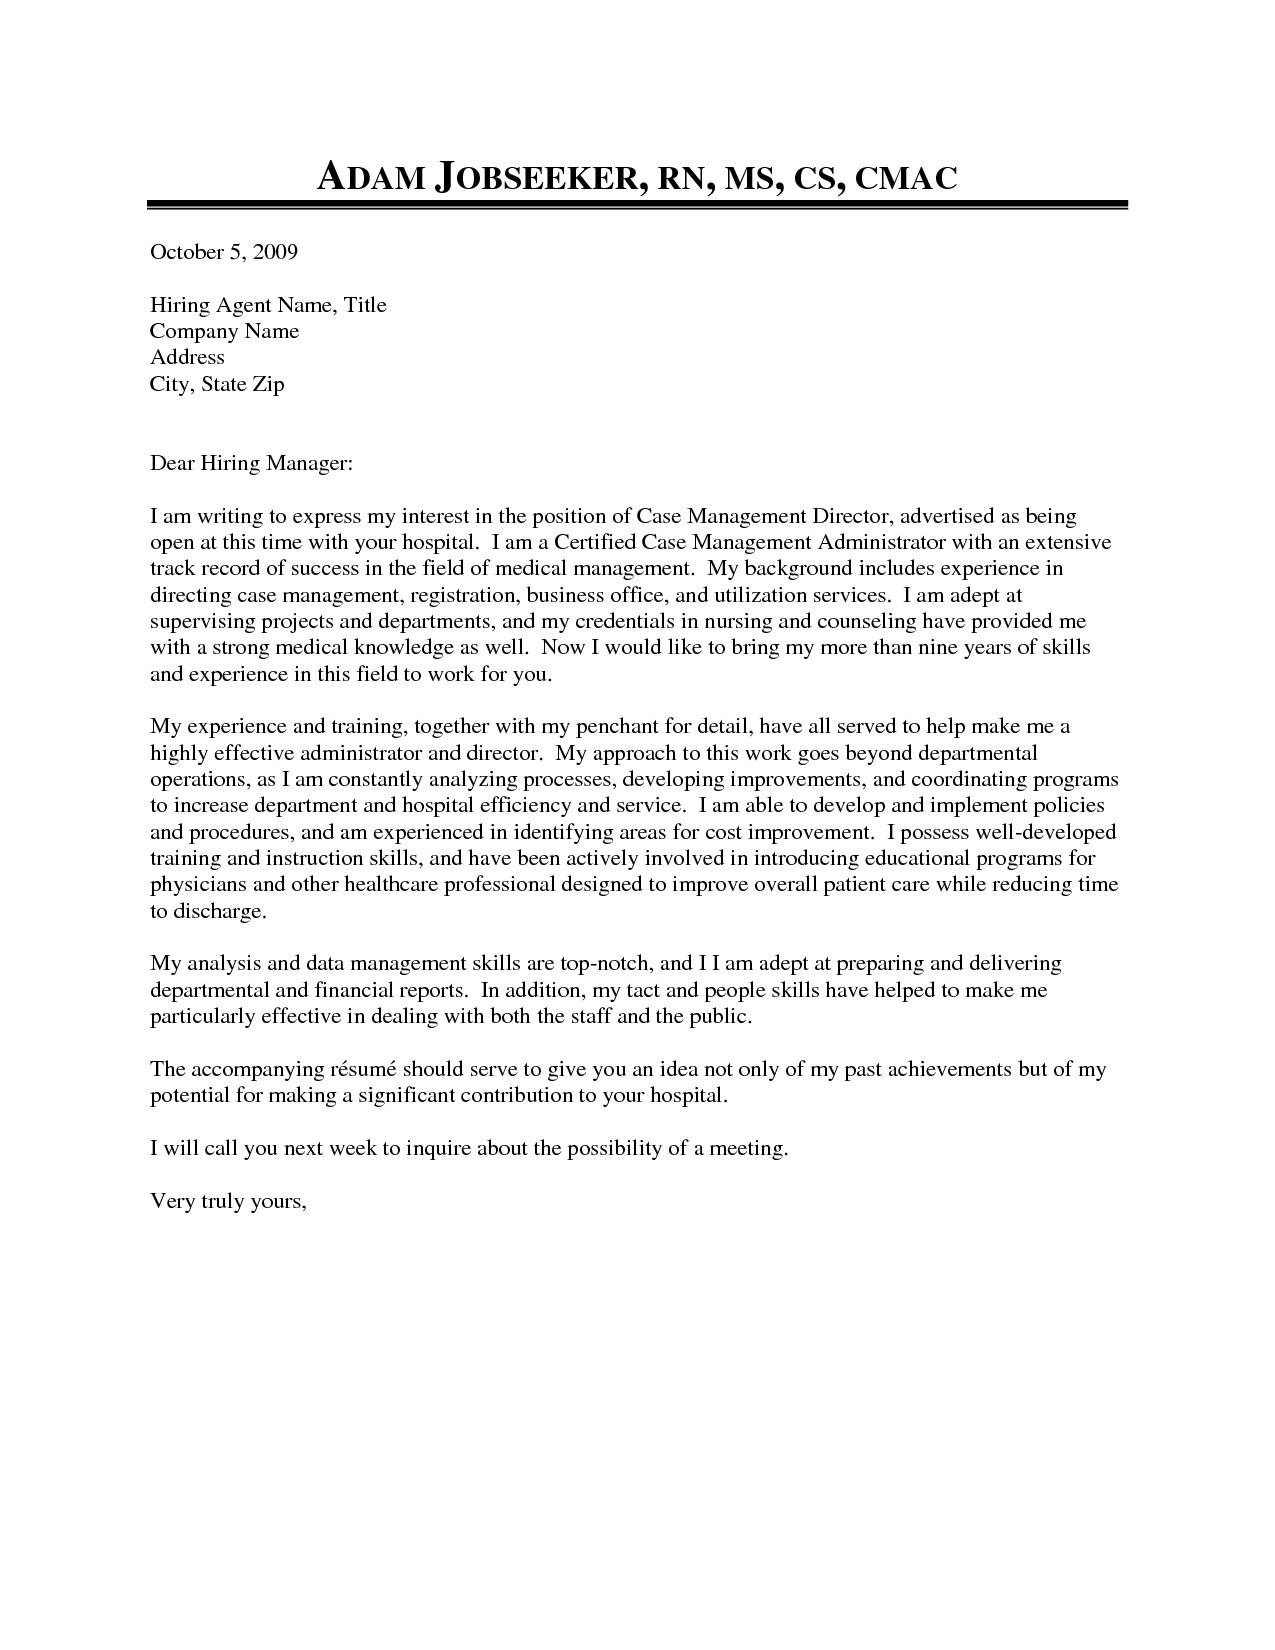 Voluntary Demotion Letter Template - Voluntary Demotion Letter Sample New Reference Letter for Police